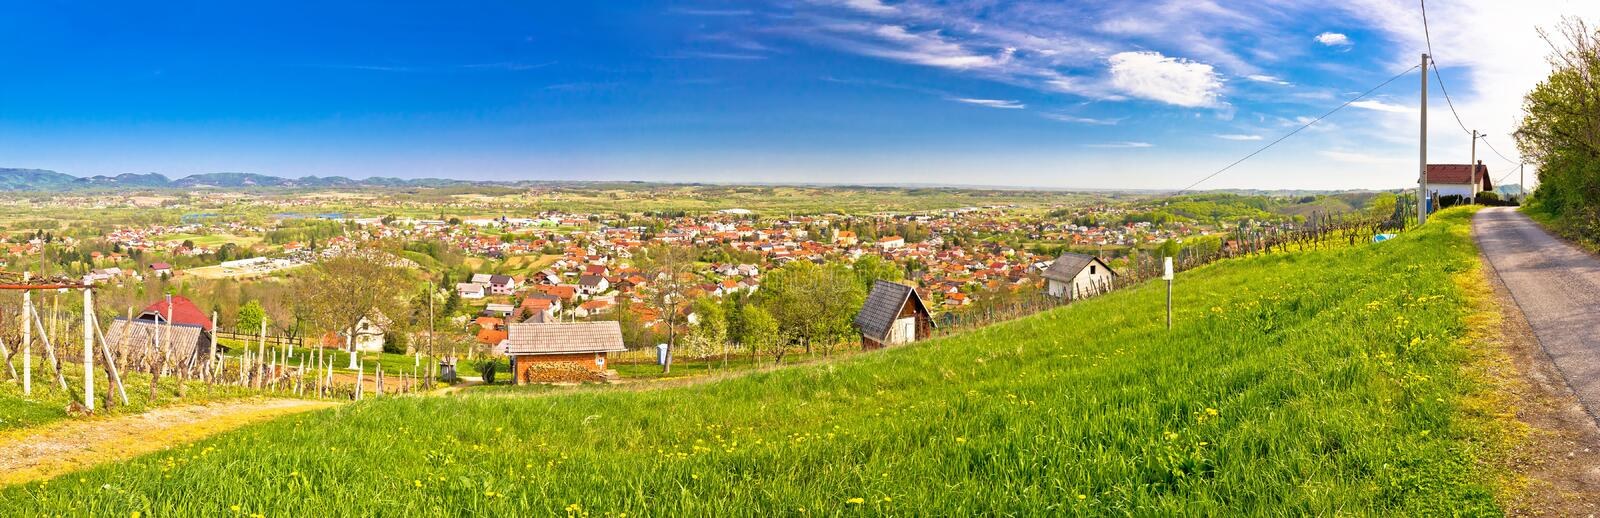 Town of Ivanec panorama from green hills, Zagorje, Croatia royalty free stock photography